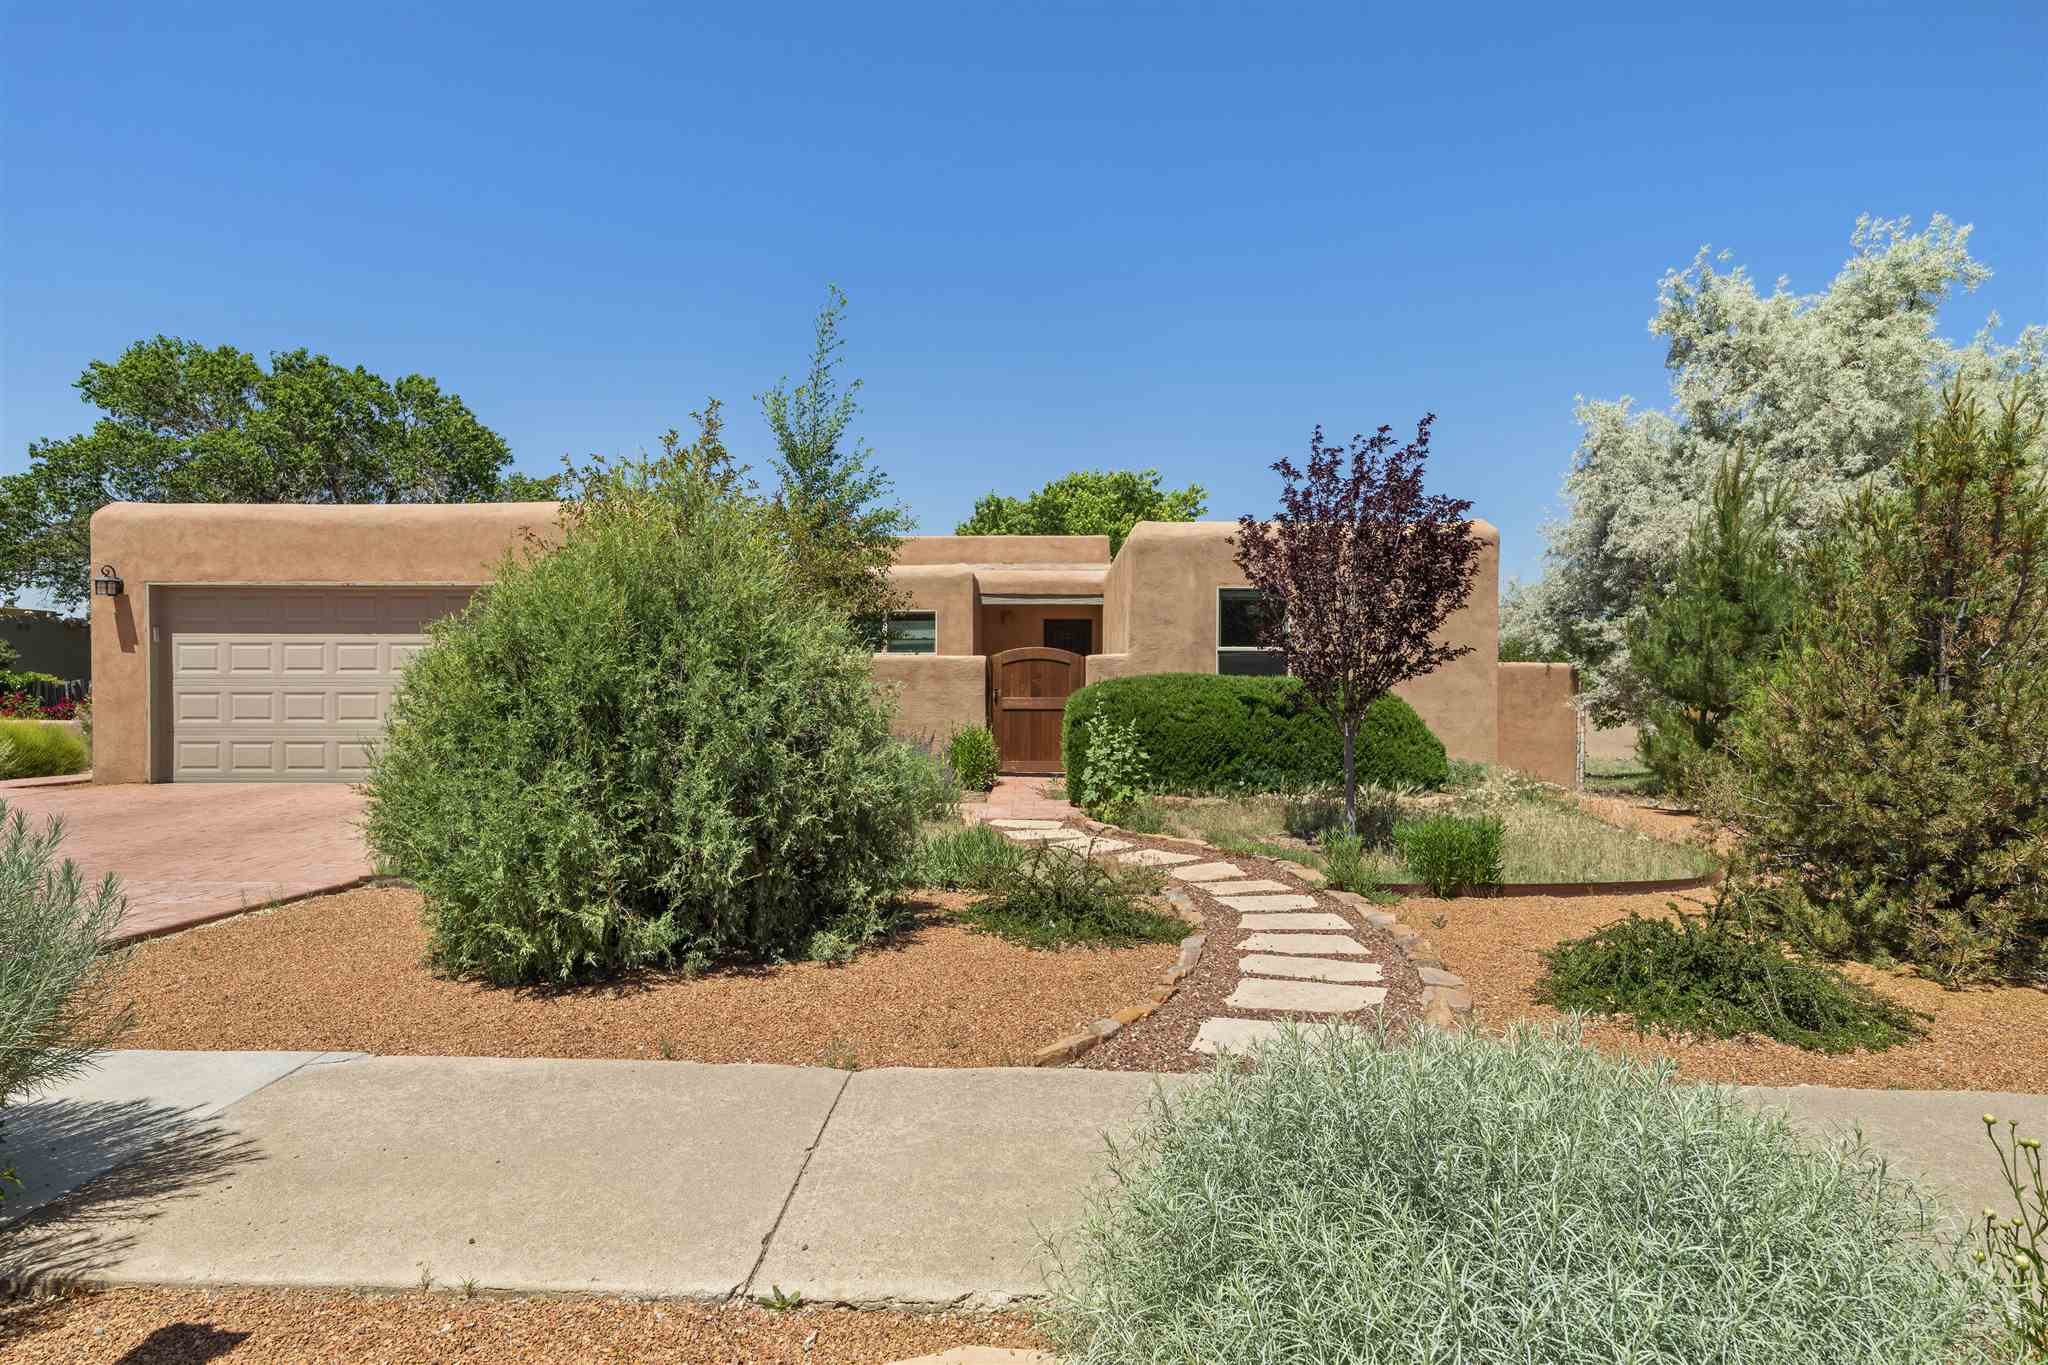 This home has been extensively remodeled, beginning in 2017 with new windows, new stucco, updated guest bathroom, and wrap-around deck opening off the west-facing sunroom. The current owners have spent more than $200,000 on additional improvements since then. These include a true chef's kitchen with custom cabinetry featuring uniquely functional drawers and shelves, quartz countertops, wall oven and microwave, new stainless steel appliances, reverse-osmosis filtration, skylights, and new custom lighting. The induction cooktop on the huge island responds instantly like gas. The master en-suite bath was also completely redone, including a walk-in shower, custom two-sink vanity, and new floor tiling and custom lighting. A brick floor was installed to replace carpeting in all common areas and the master bedroom. Skylights and a built-in bookcase were added in the living room. A new front-load washer and dryer set was added, as well as a new furnace and tankless water heater. A $50,000+ investment in extensive, professionally designed and installed landscaping in both the front and fully fenced back yard includes an irrigation system, fruit trees, lush flowering plants, new flagstone courtyard patio with water feature, new gates, and new driveway and walkway. Ideal in-town location, quiet and convenient. An unexpected relocation makes all this available to you!